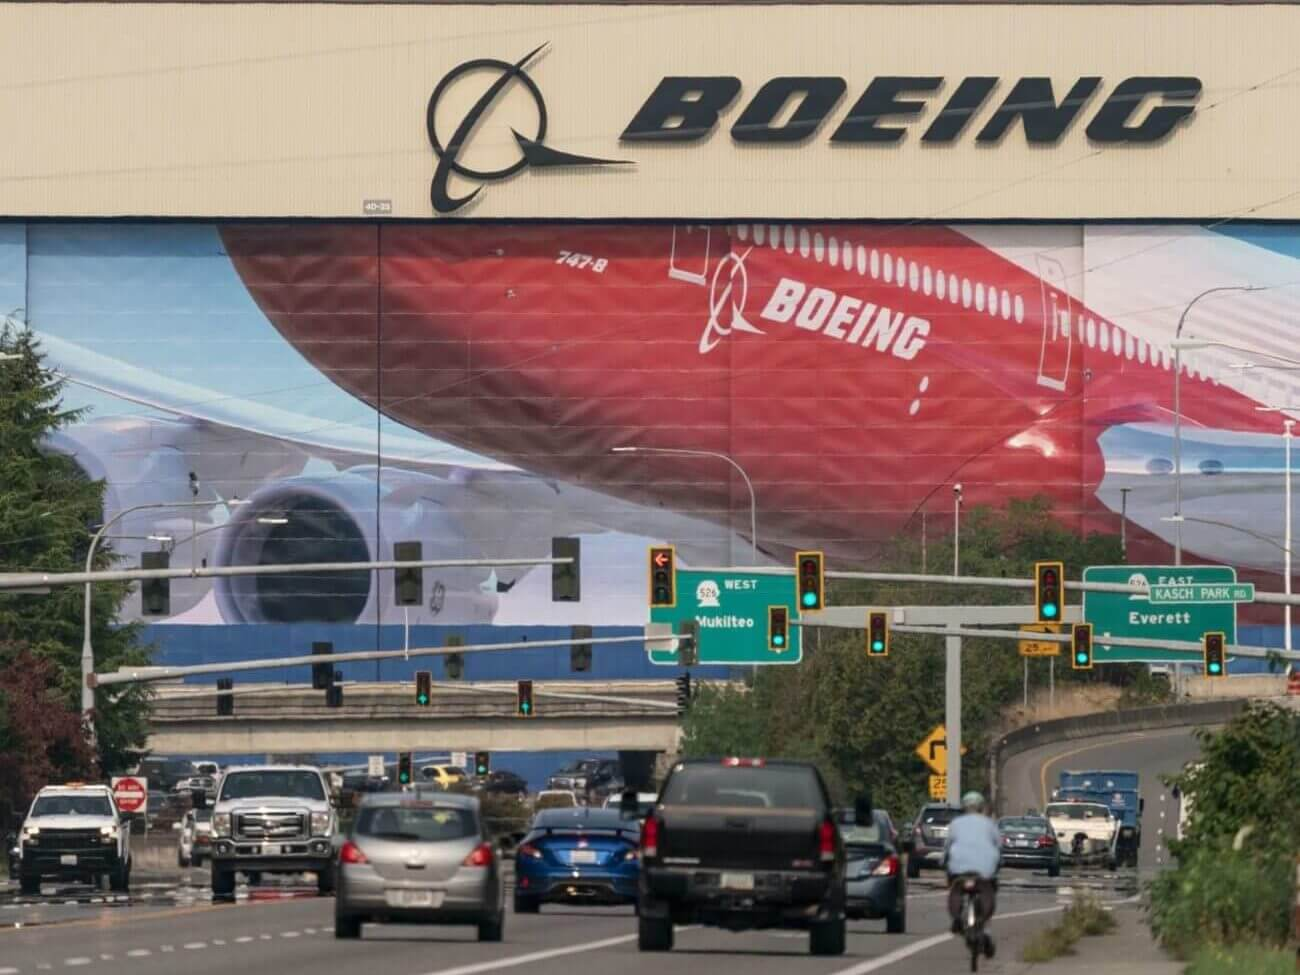 Boeing Is the Latest Firm to Ruin out a Hostile Business Atmosphere